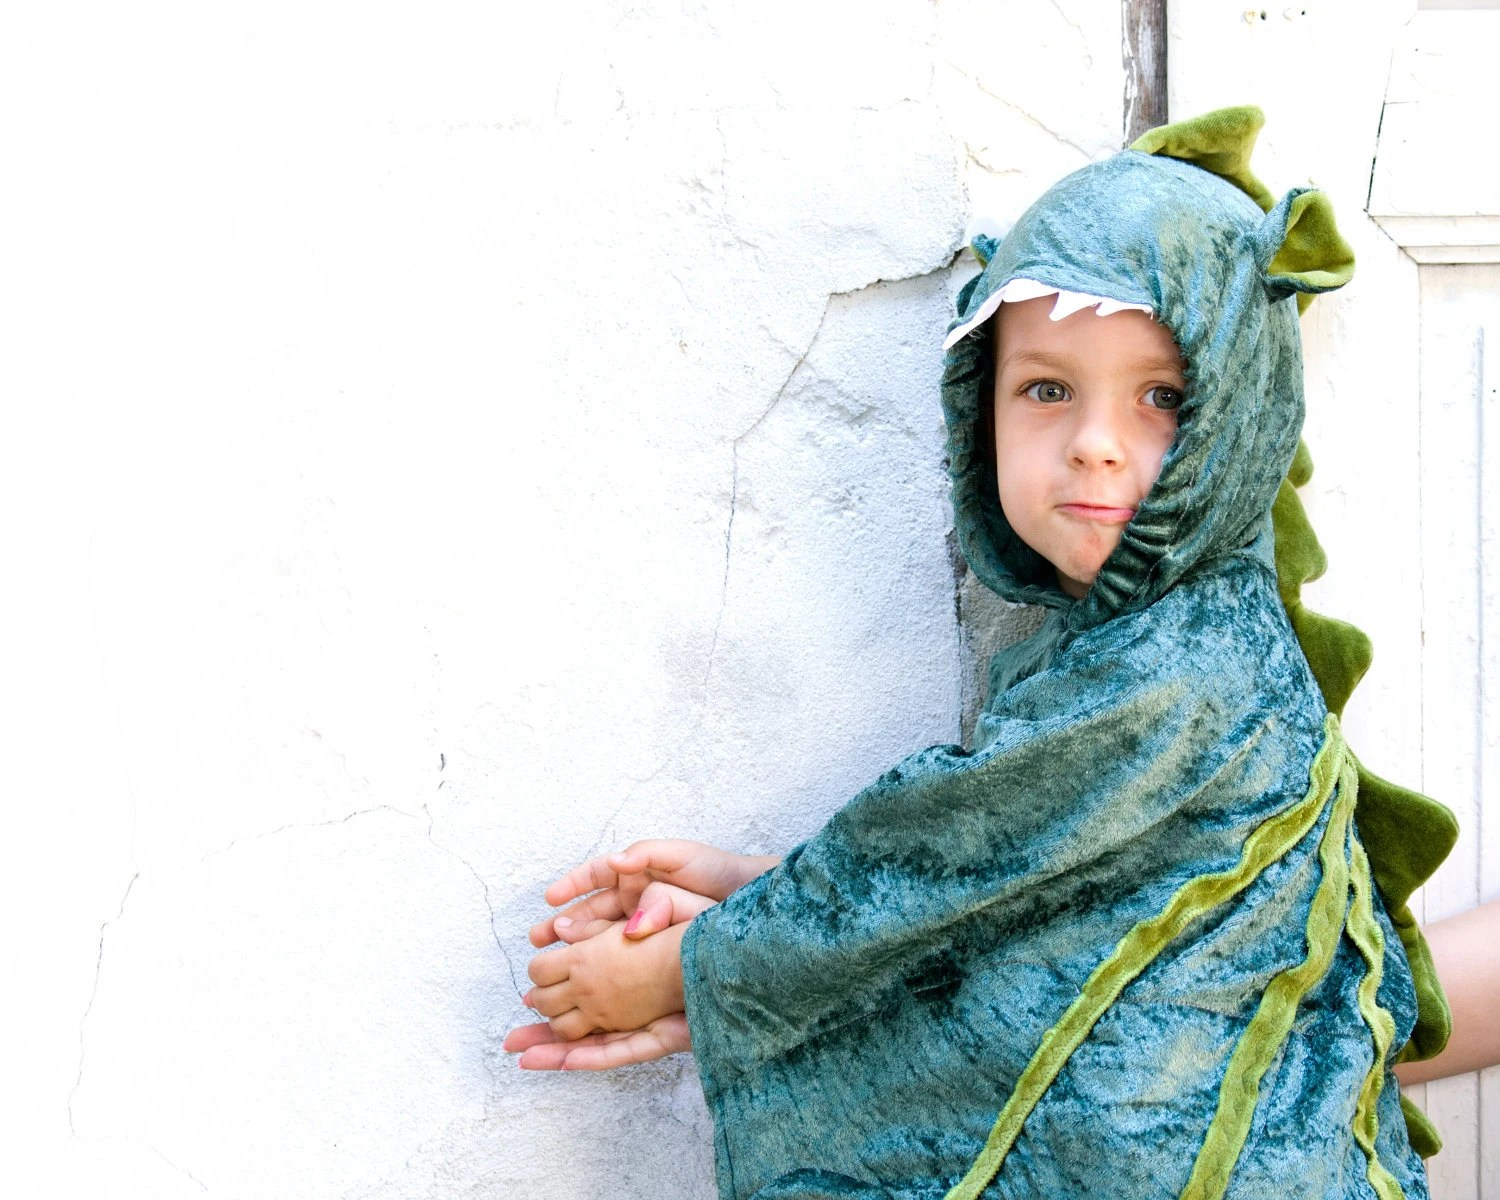 Dragon Costume, Kid Birthday Party Costume, Party Fairy Tale Dragon Green Costume, Halloween Costume with Wings for Boys or Girls - BeauMiracleForYou